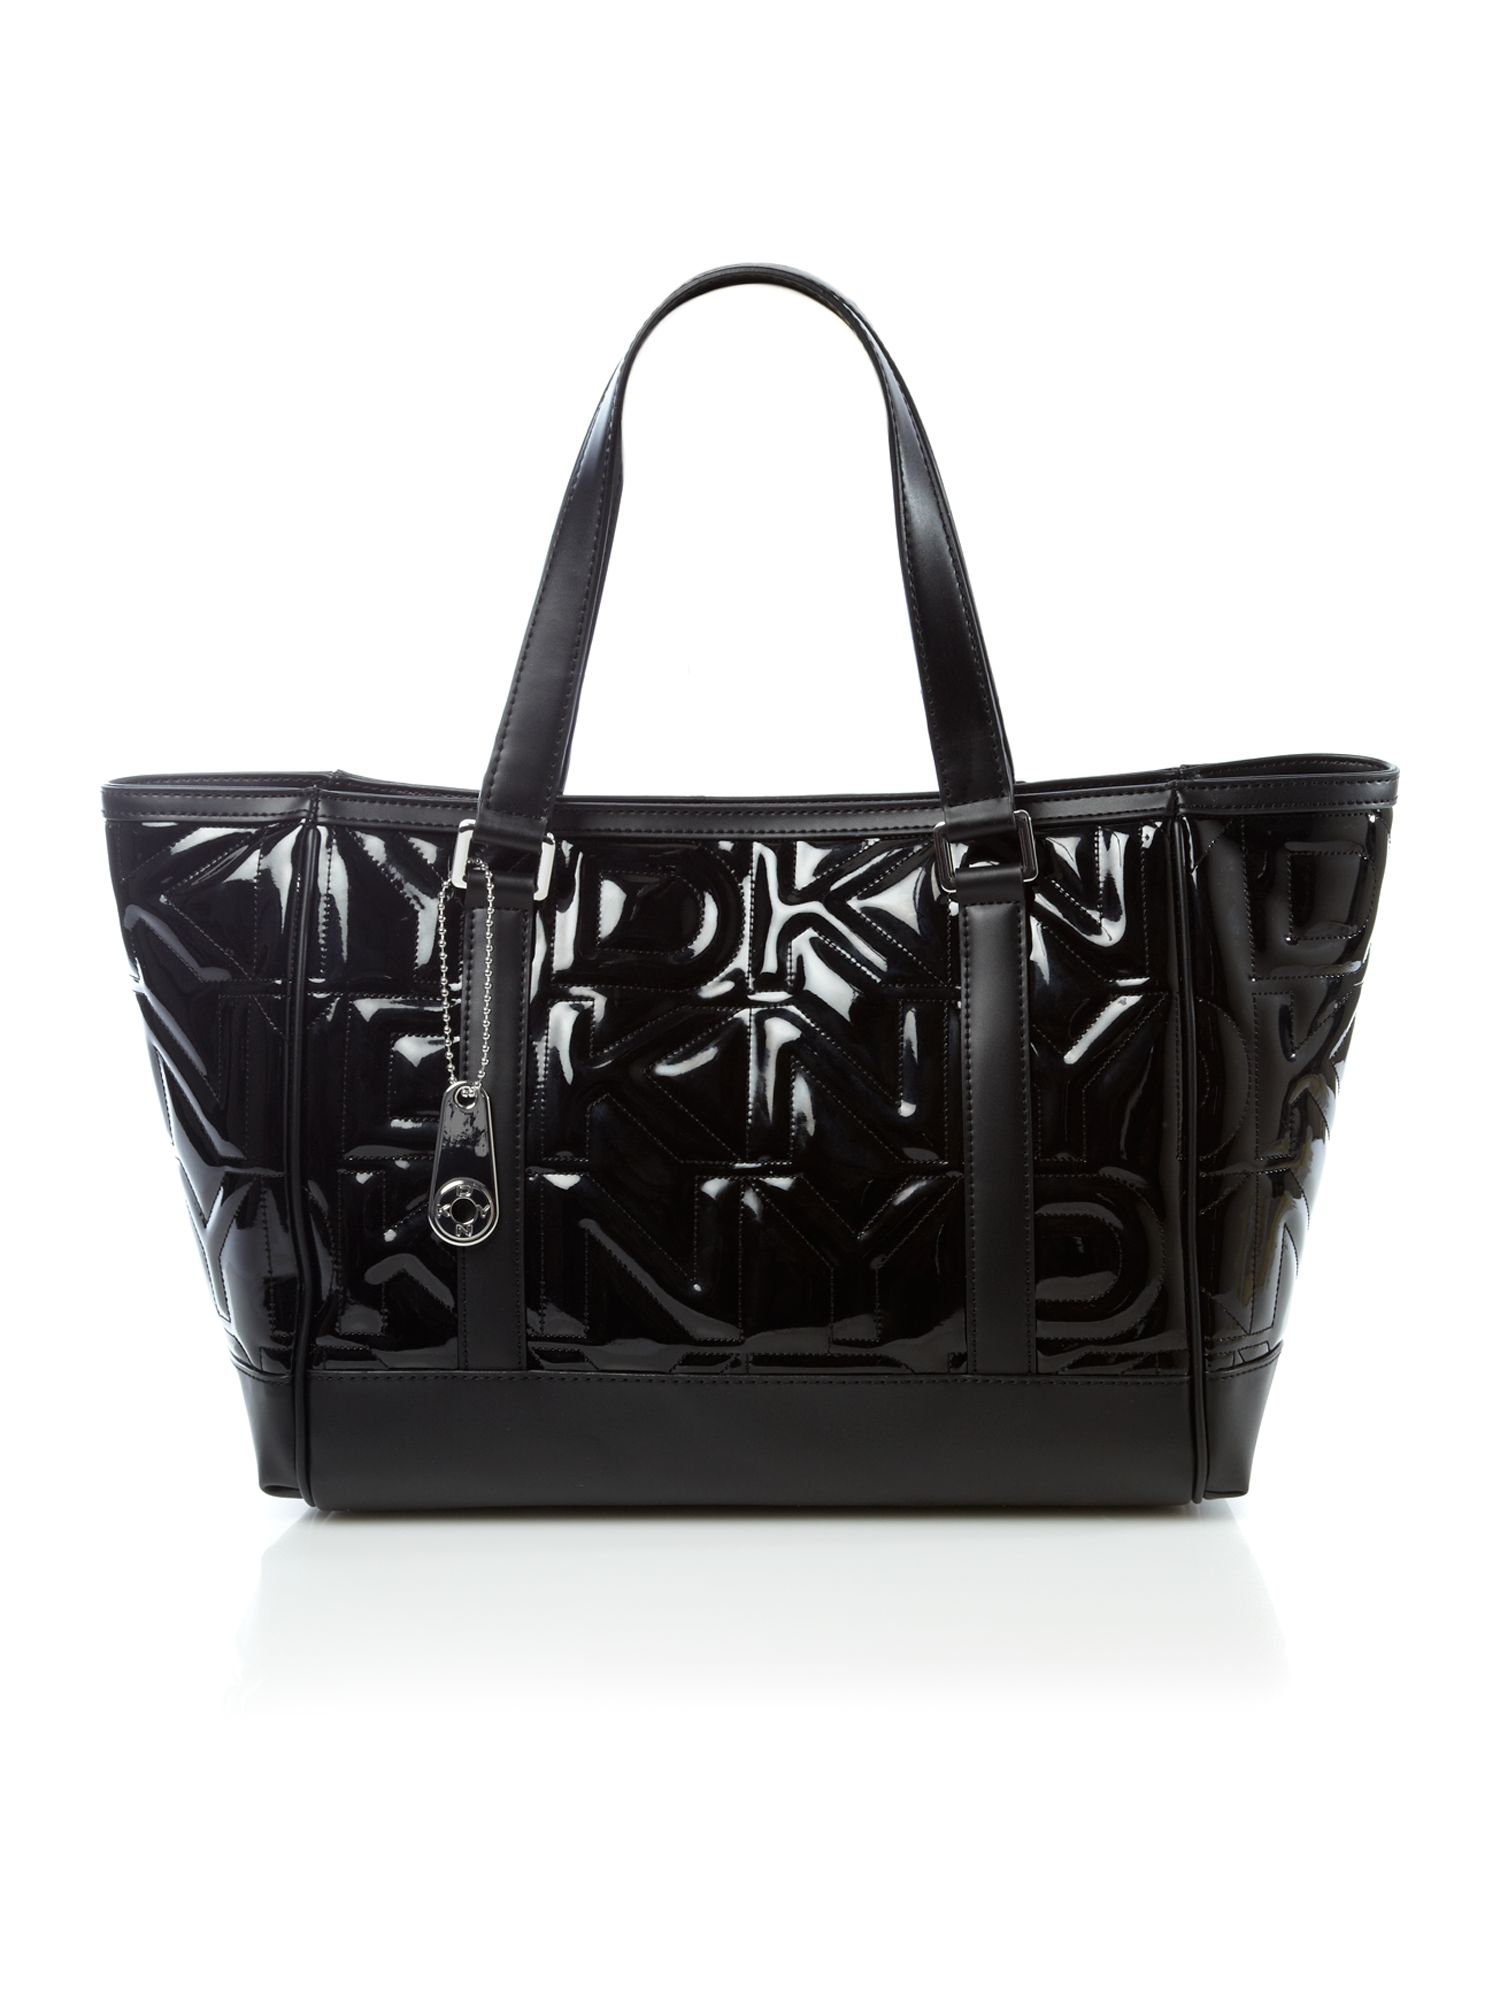 DKNY Quilted Logo Tote in Black